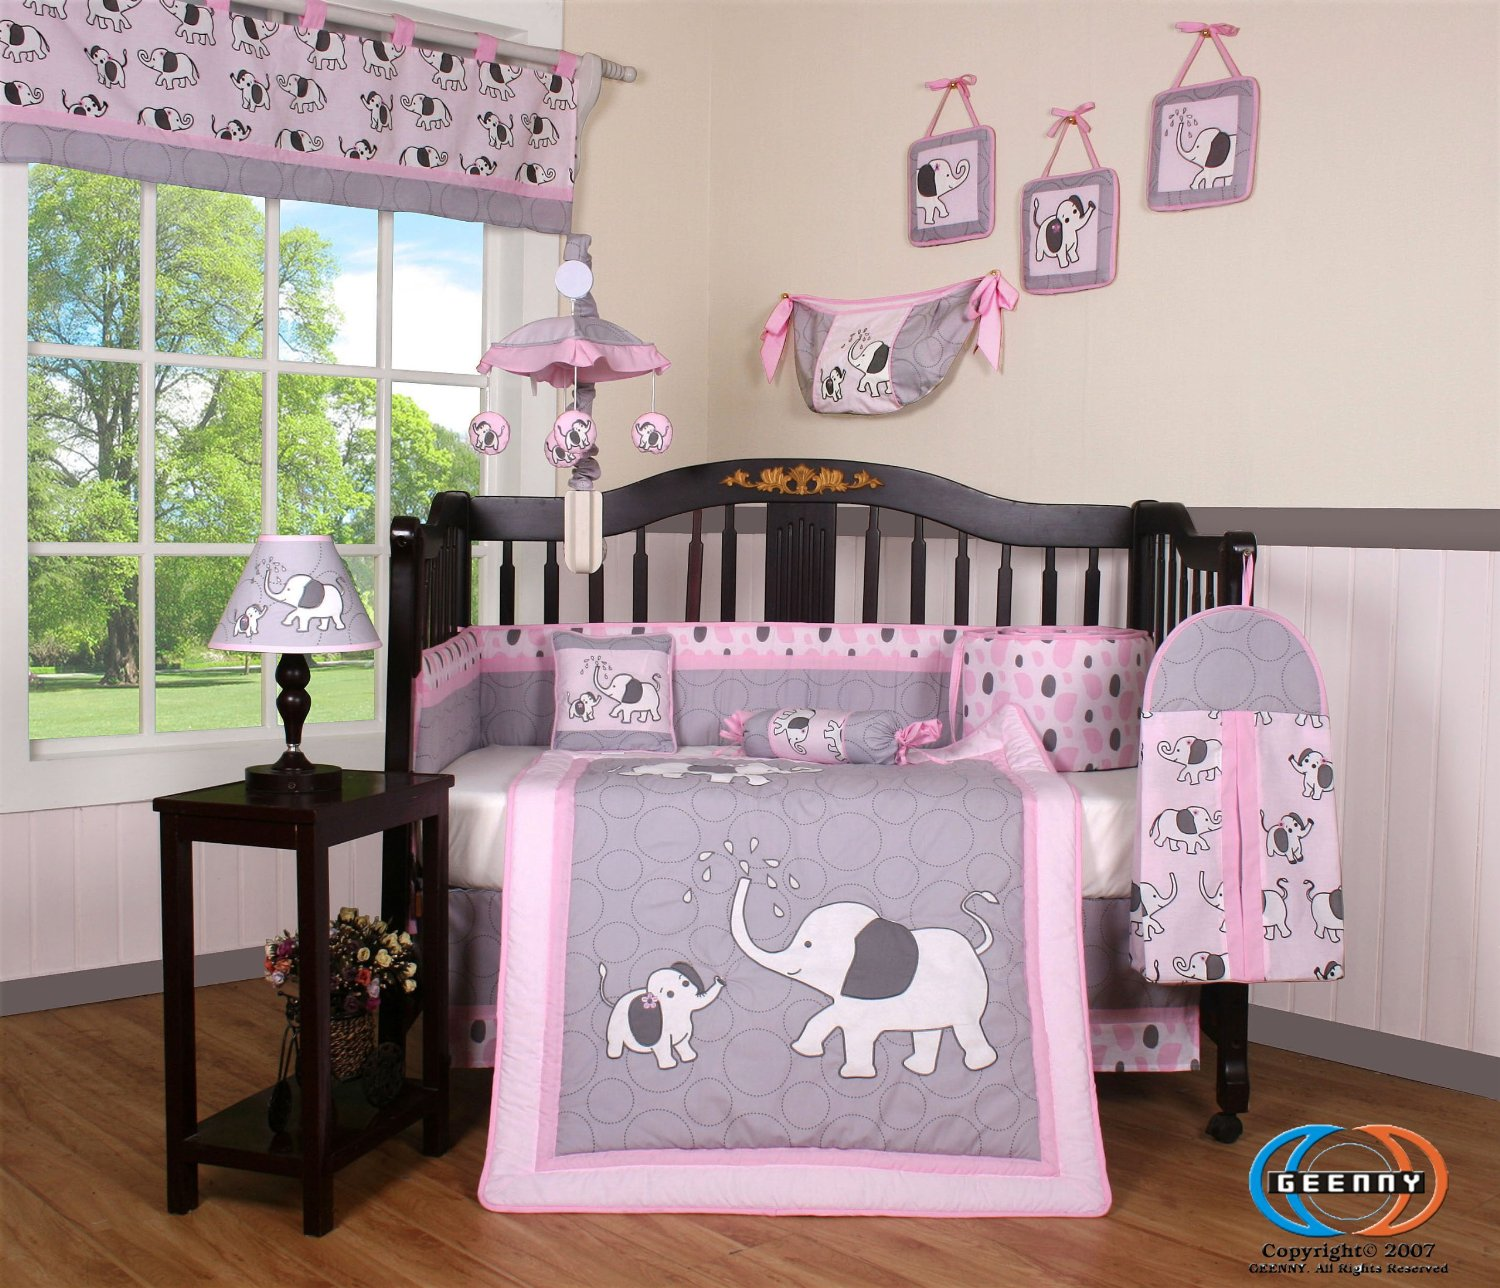 Pink and Grey Crib Bedding Sets for Baby Girls' Nursery